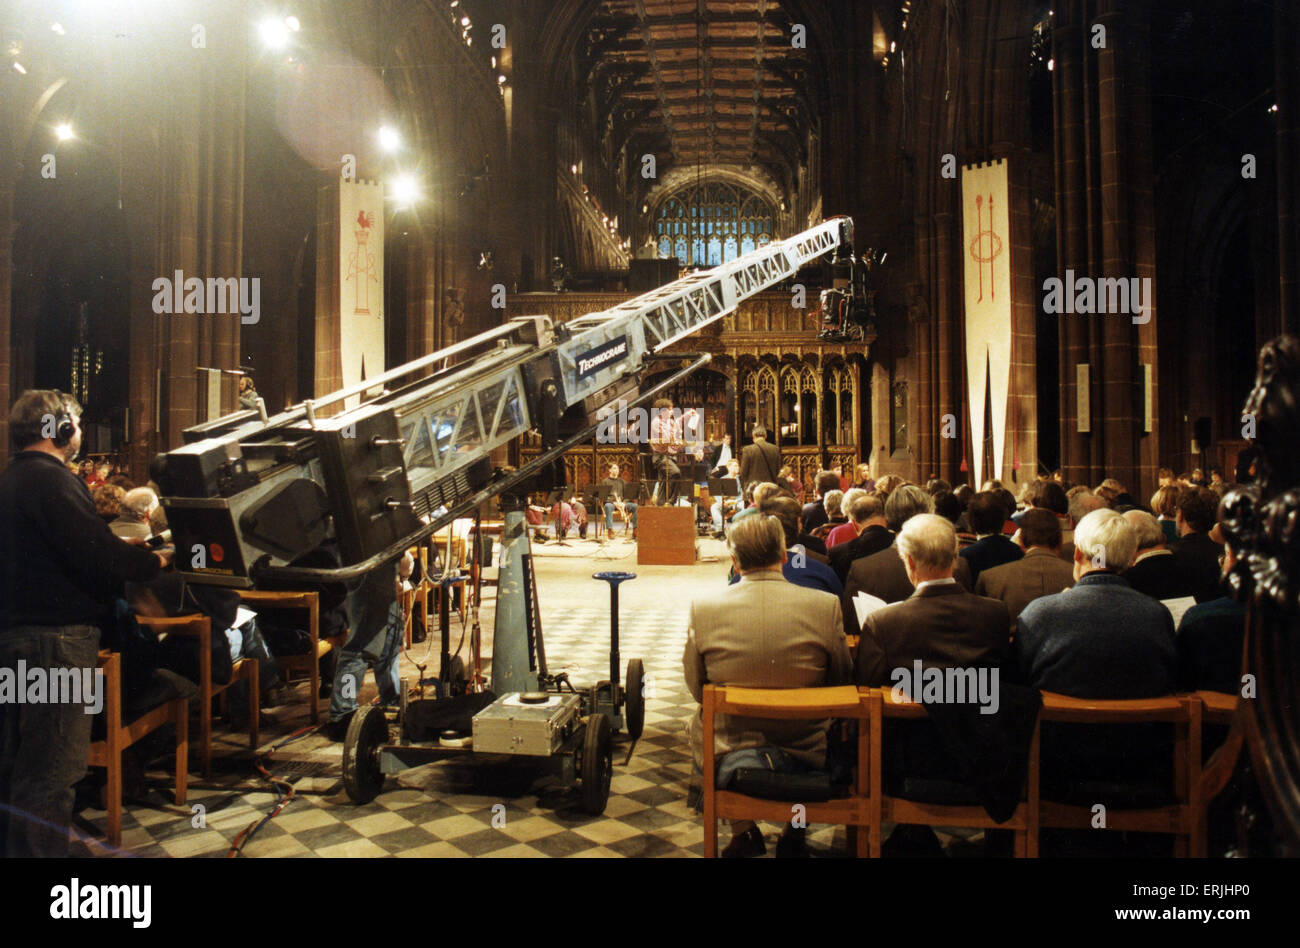 Filming of Songs of Praise, BBC Television Programme at Manchester Cathedral, 1st March 1994. Manchester Cathedral - Stock Image